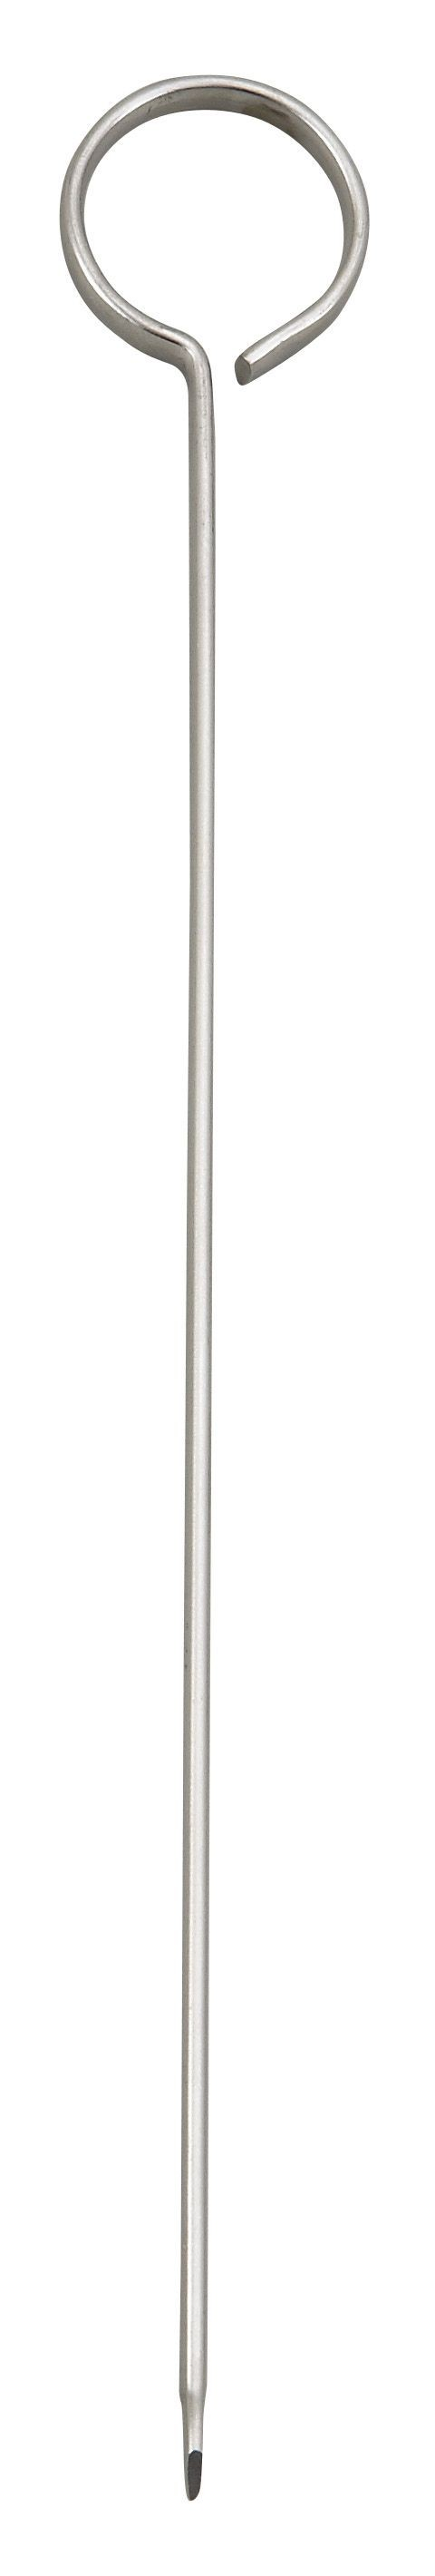 Winco SKO-8 Oval-Tipped Stainless Steel Skewer 8""